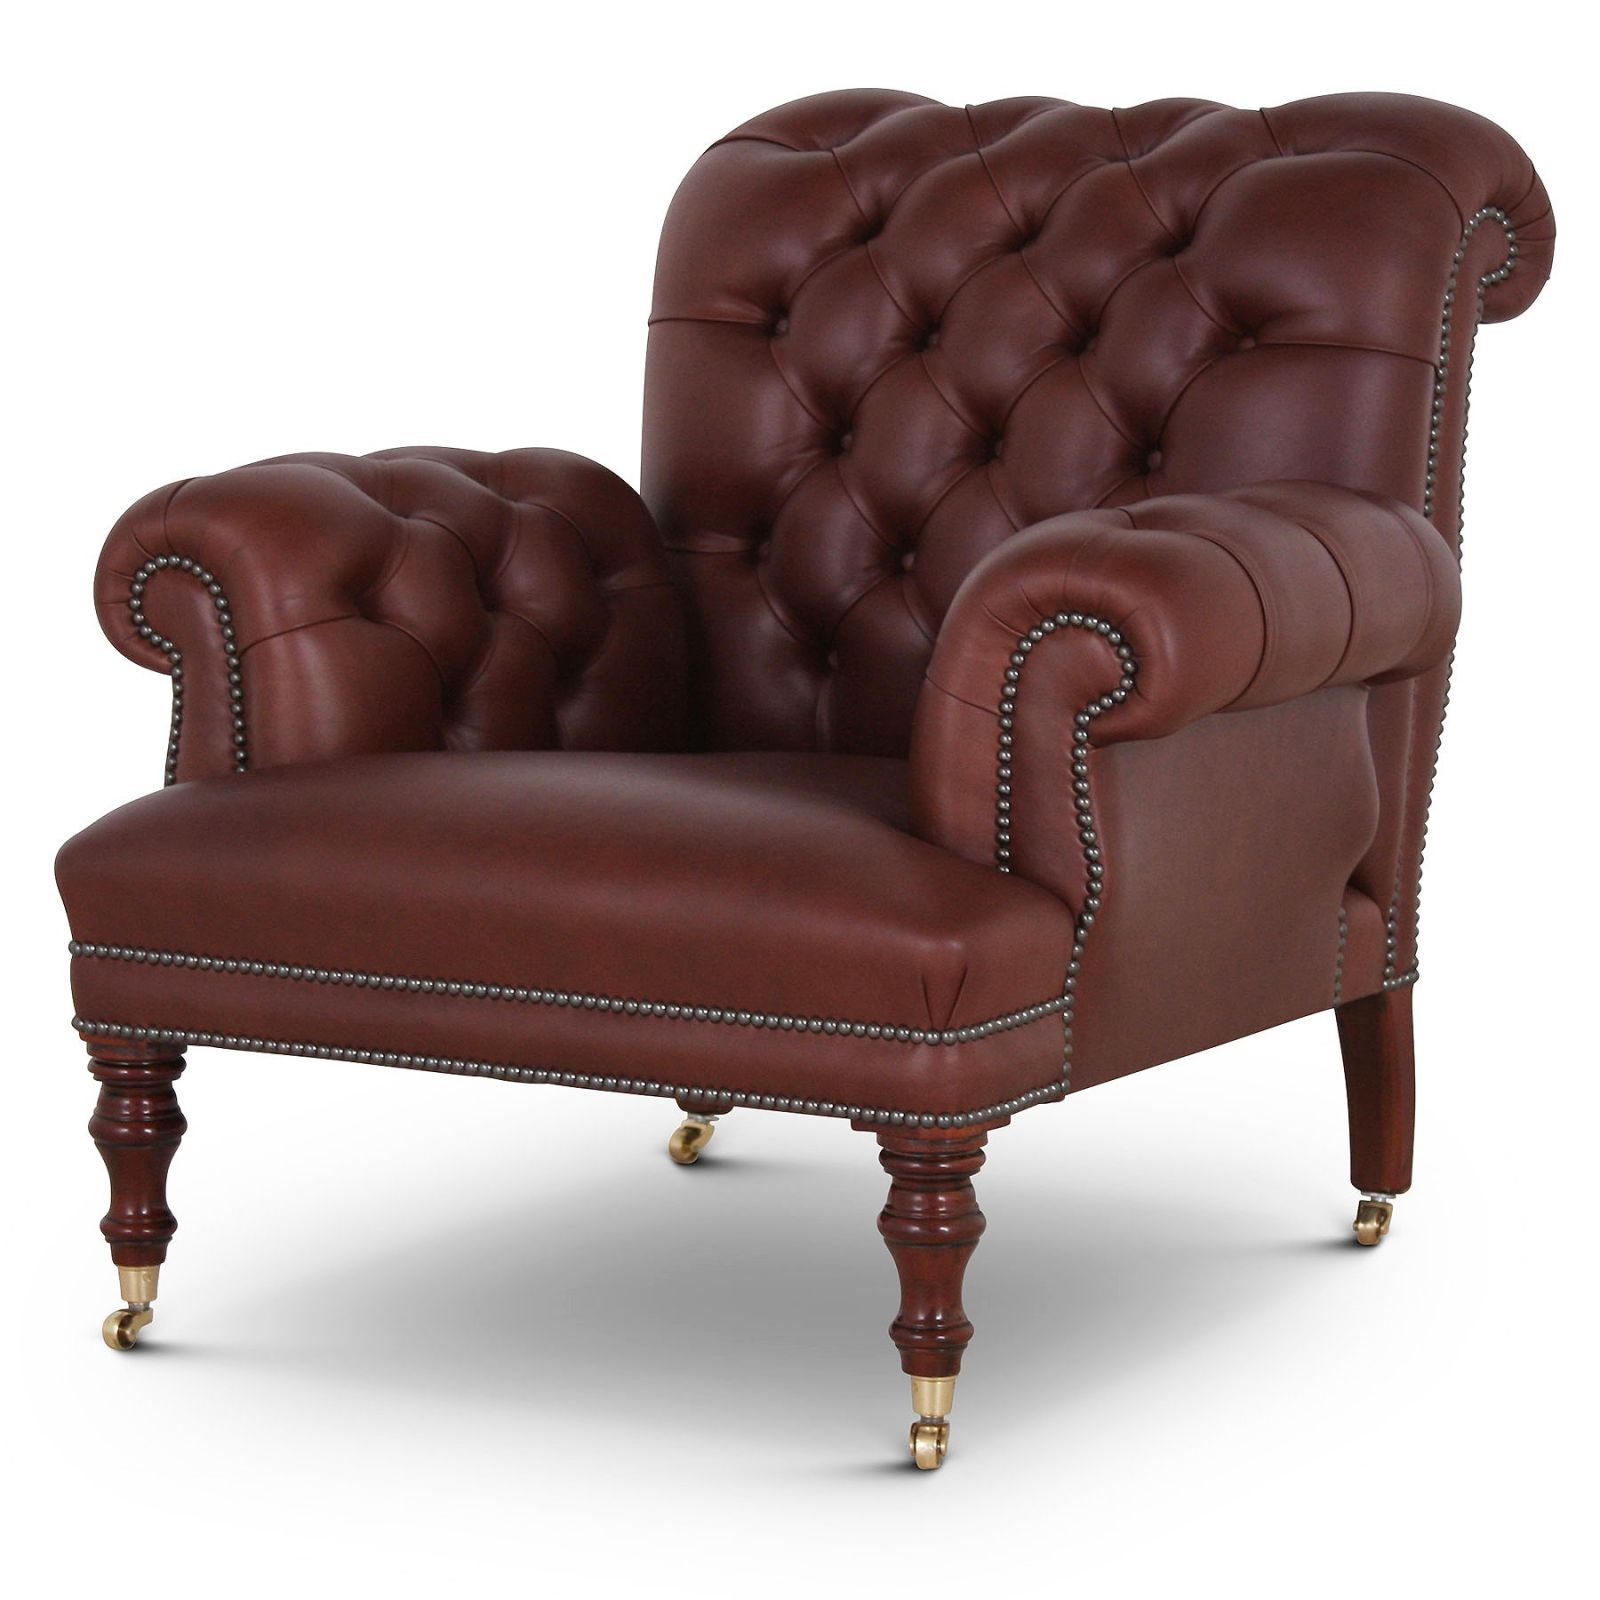 Warwick antique style buttoned leather chair